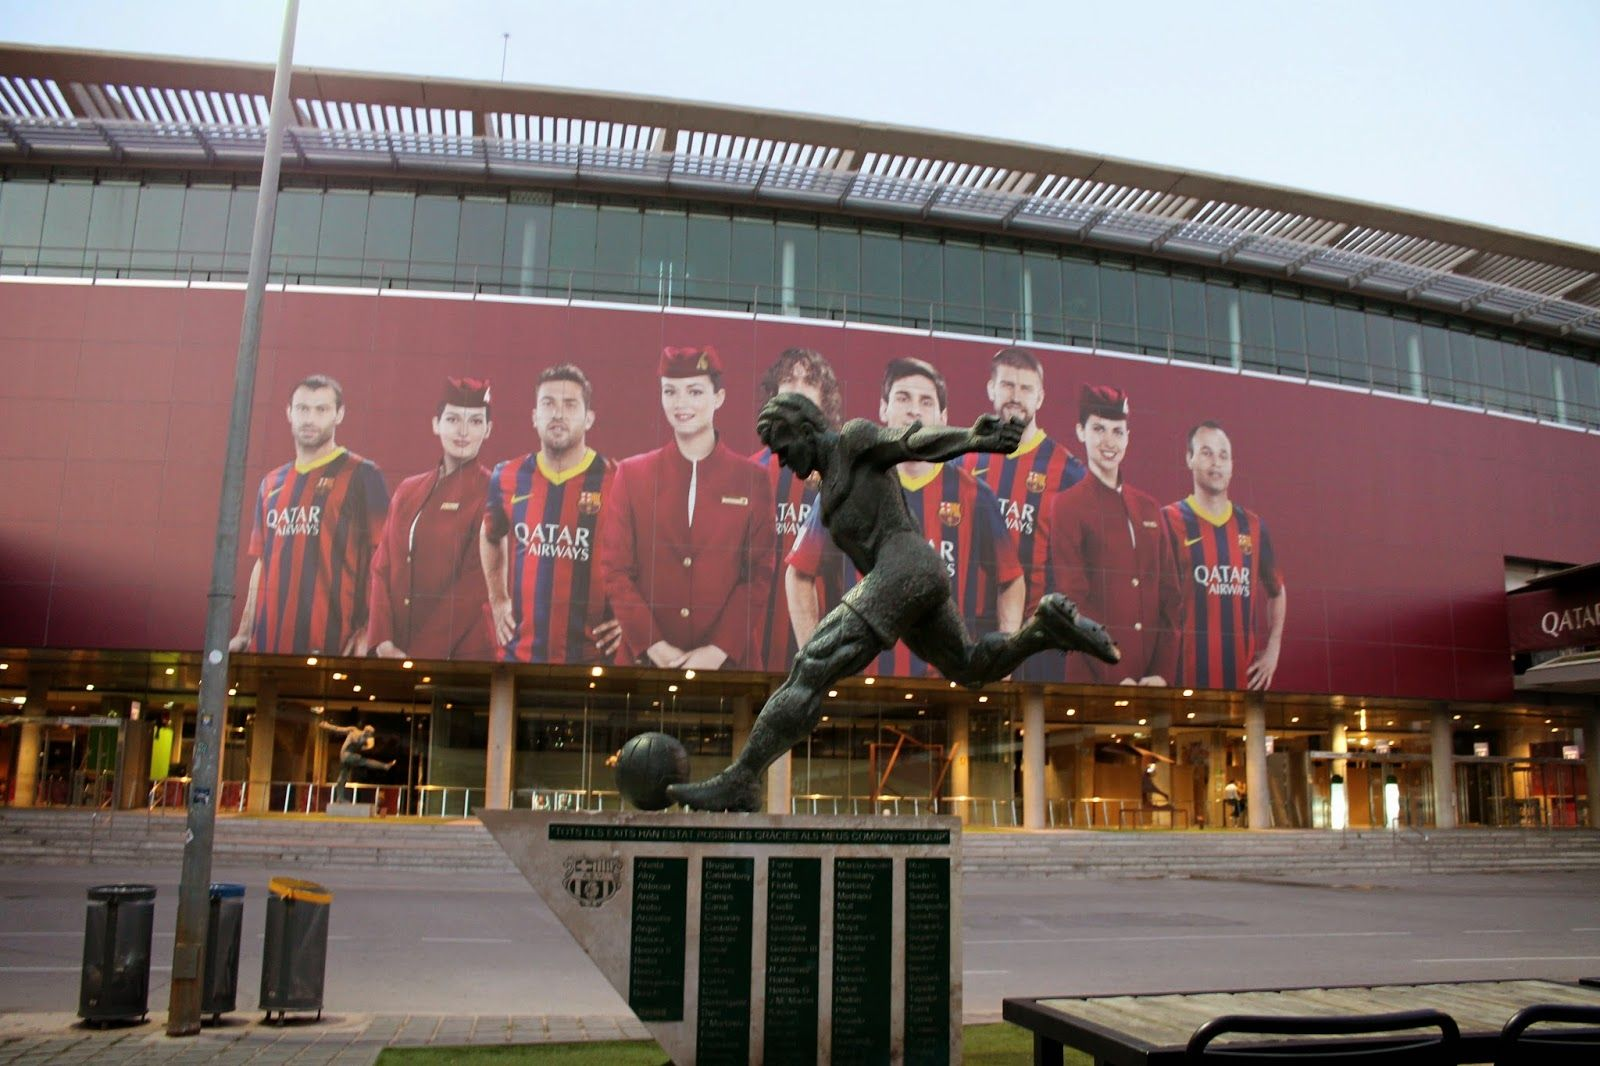 Camp Nou Really cool just to walk around.